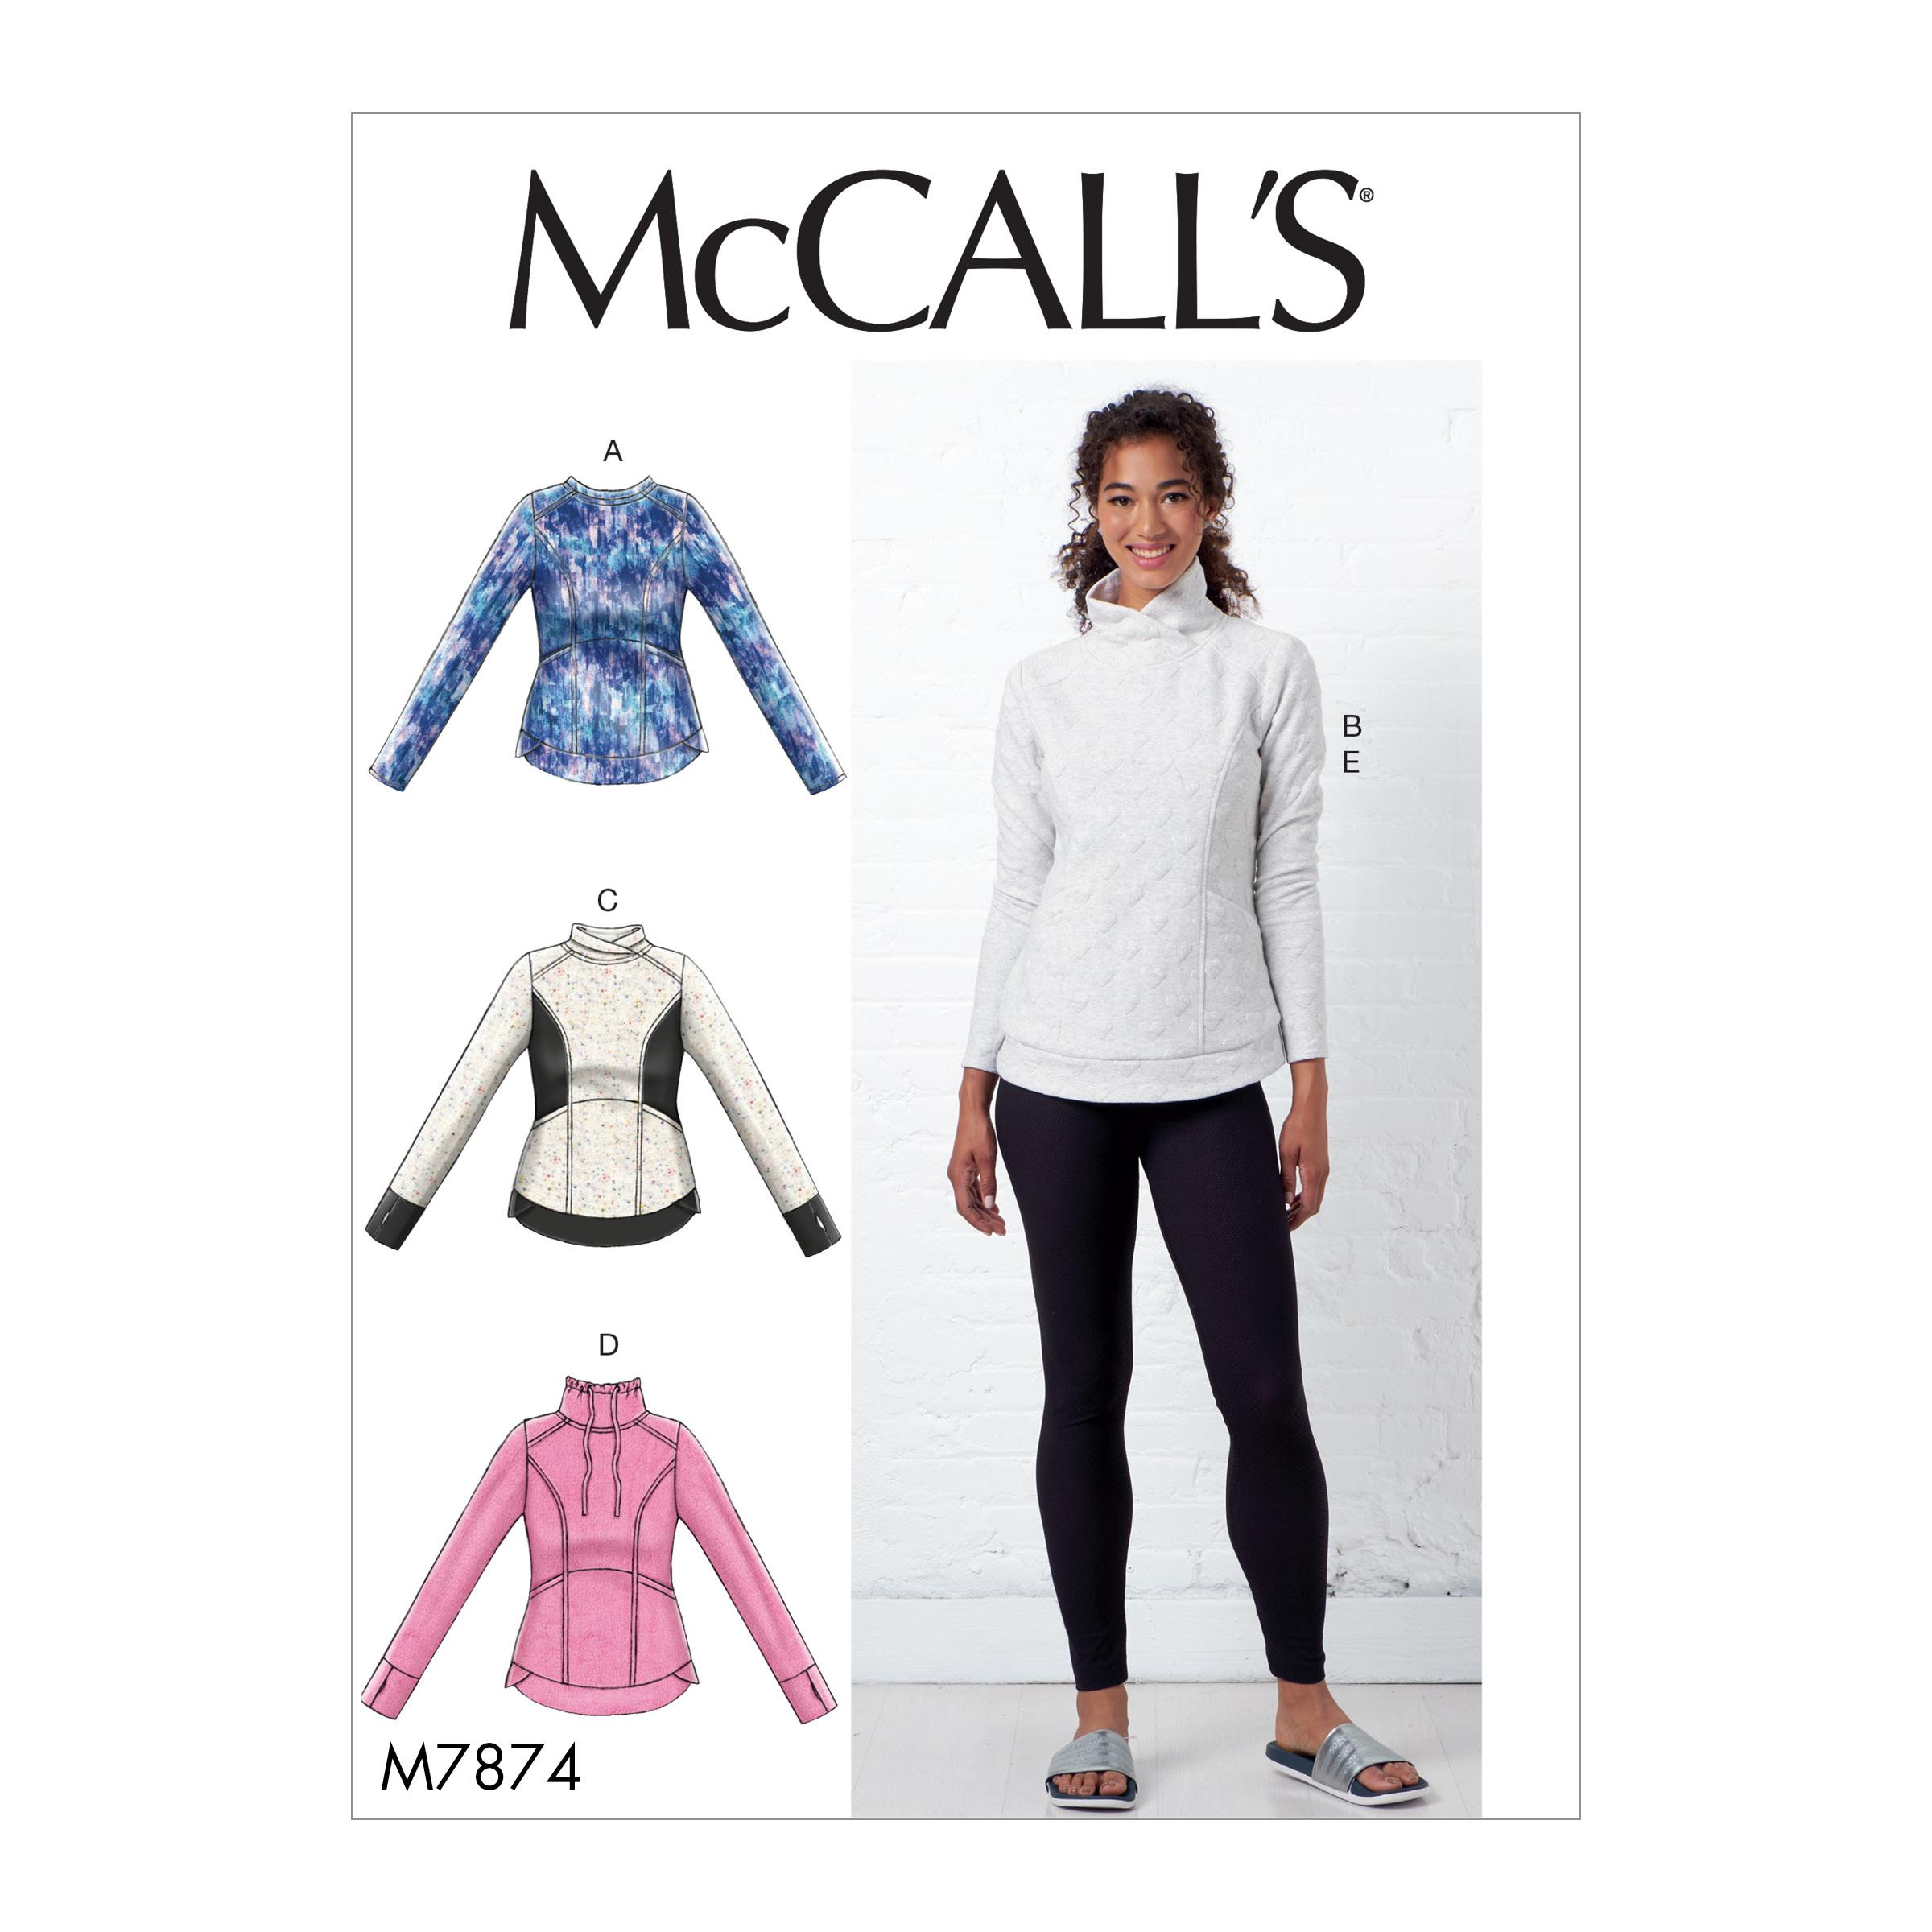 McCalls M7874 Misses Tops, Misses Pants, Jumpsuits & Shorts, Misses Coordinates